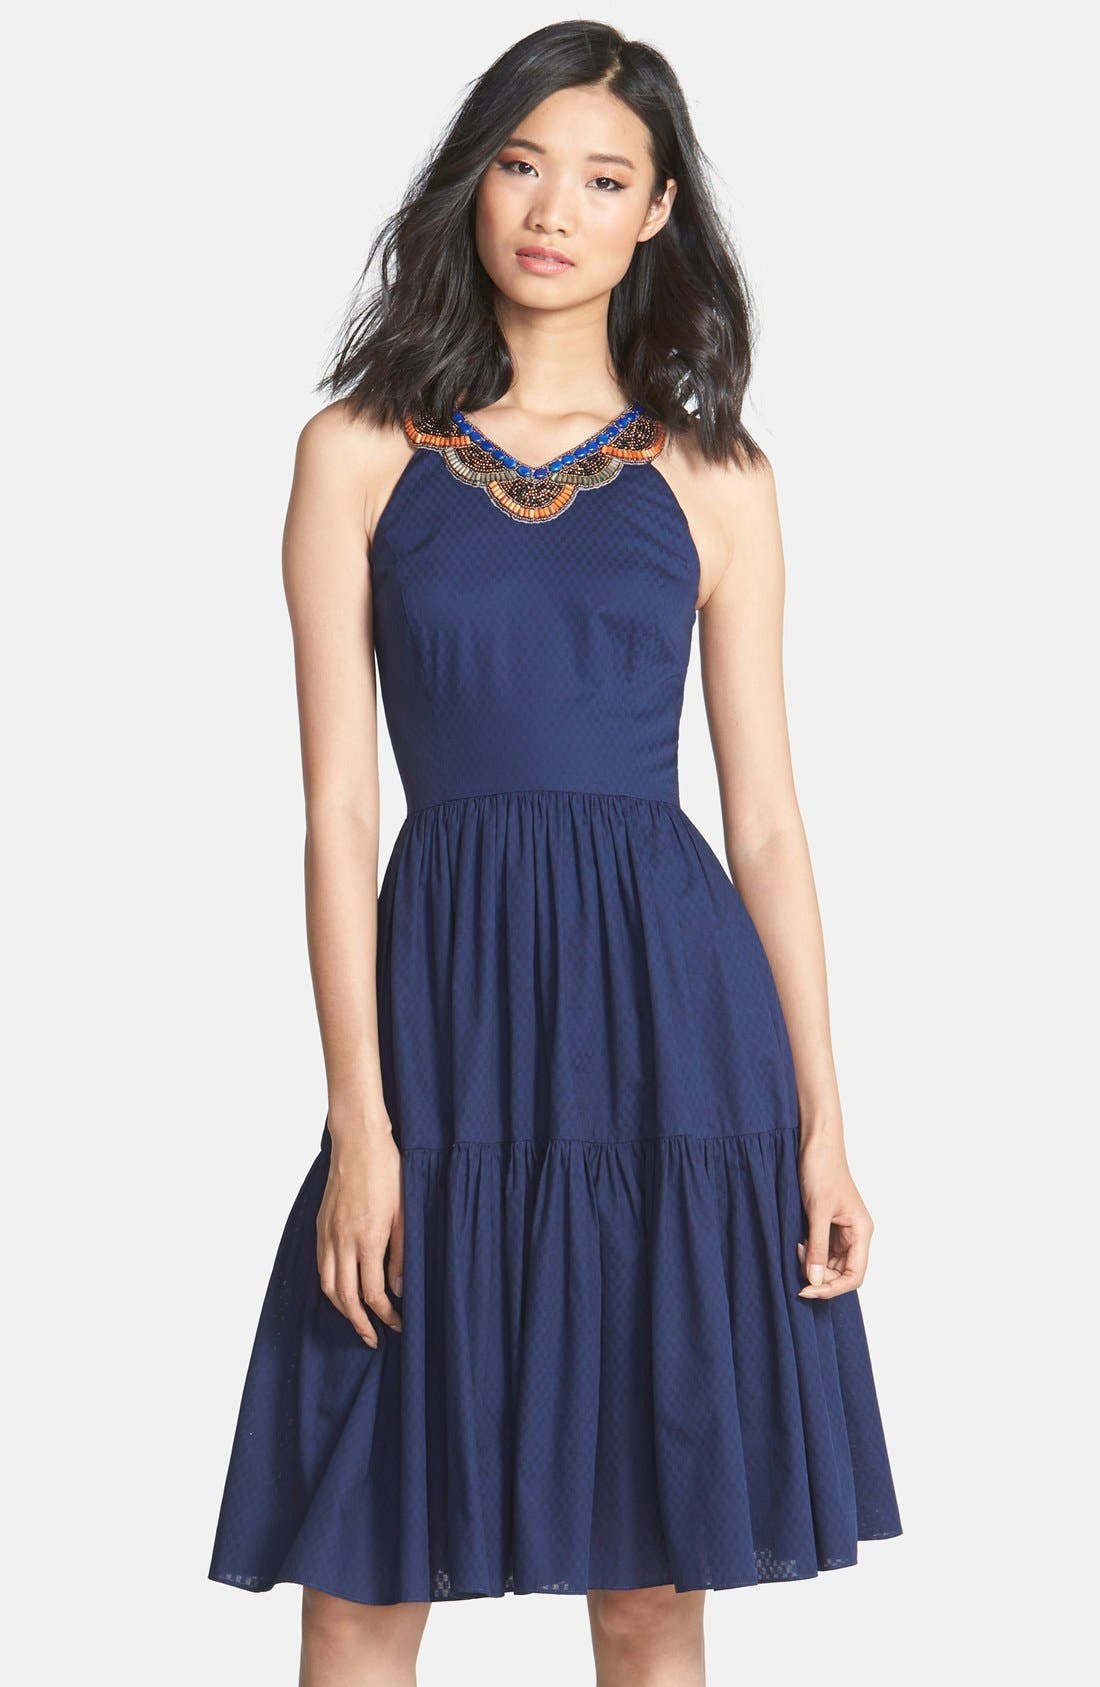 Alternate Image 1 Selected - Cynthia Steffe 'Jett' Embellished Tiered Jacquard Midi Dress